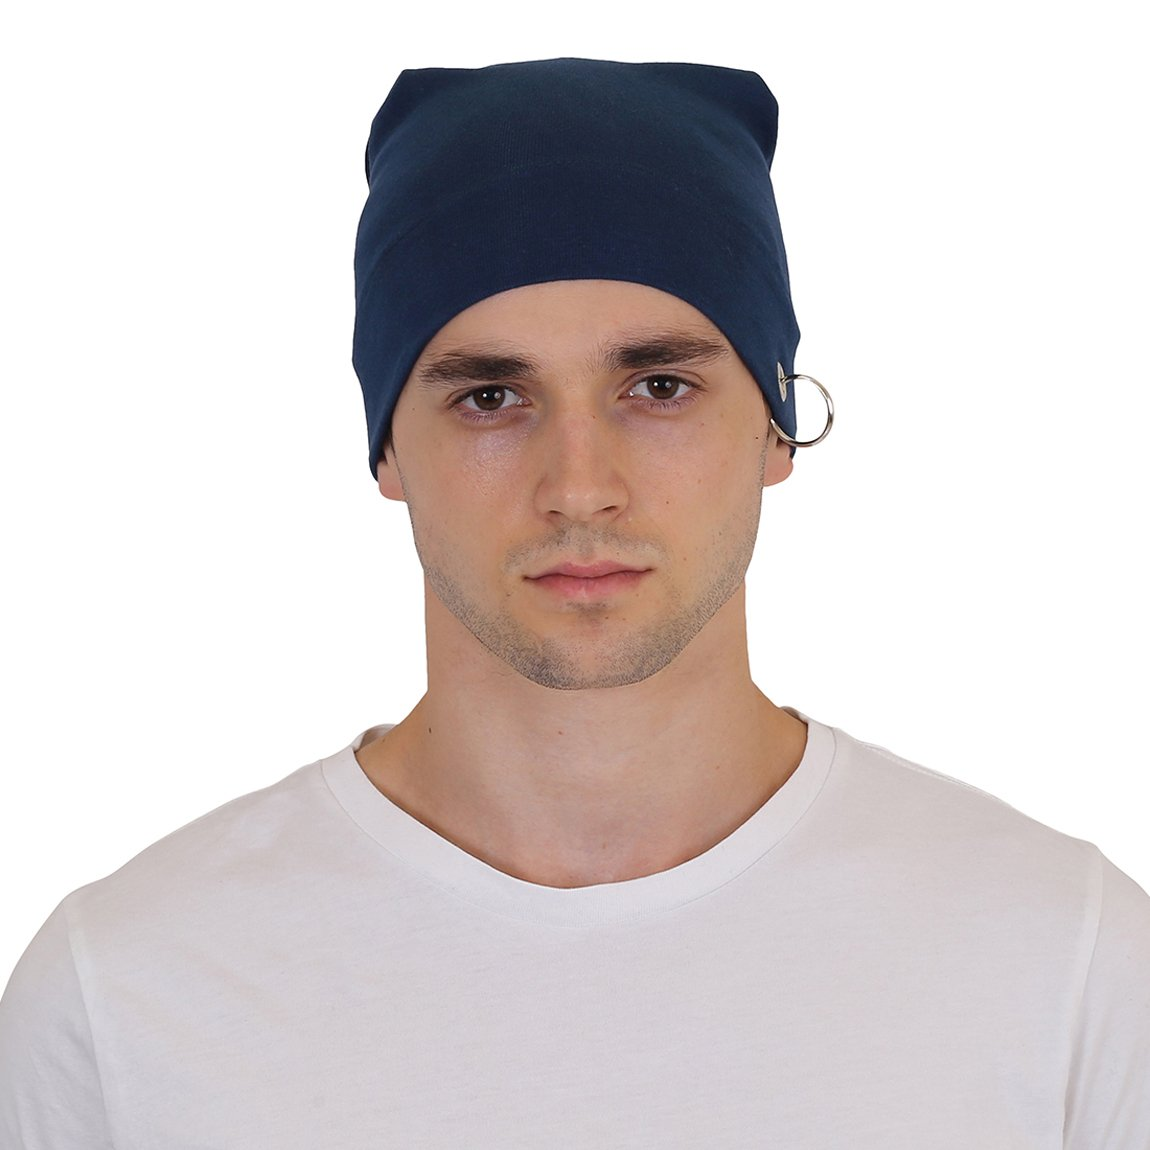 7b1766c4d1d NEON ROCK Men s Cap with Ring (Blue)  Amazon.in  Clothing   Accessories